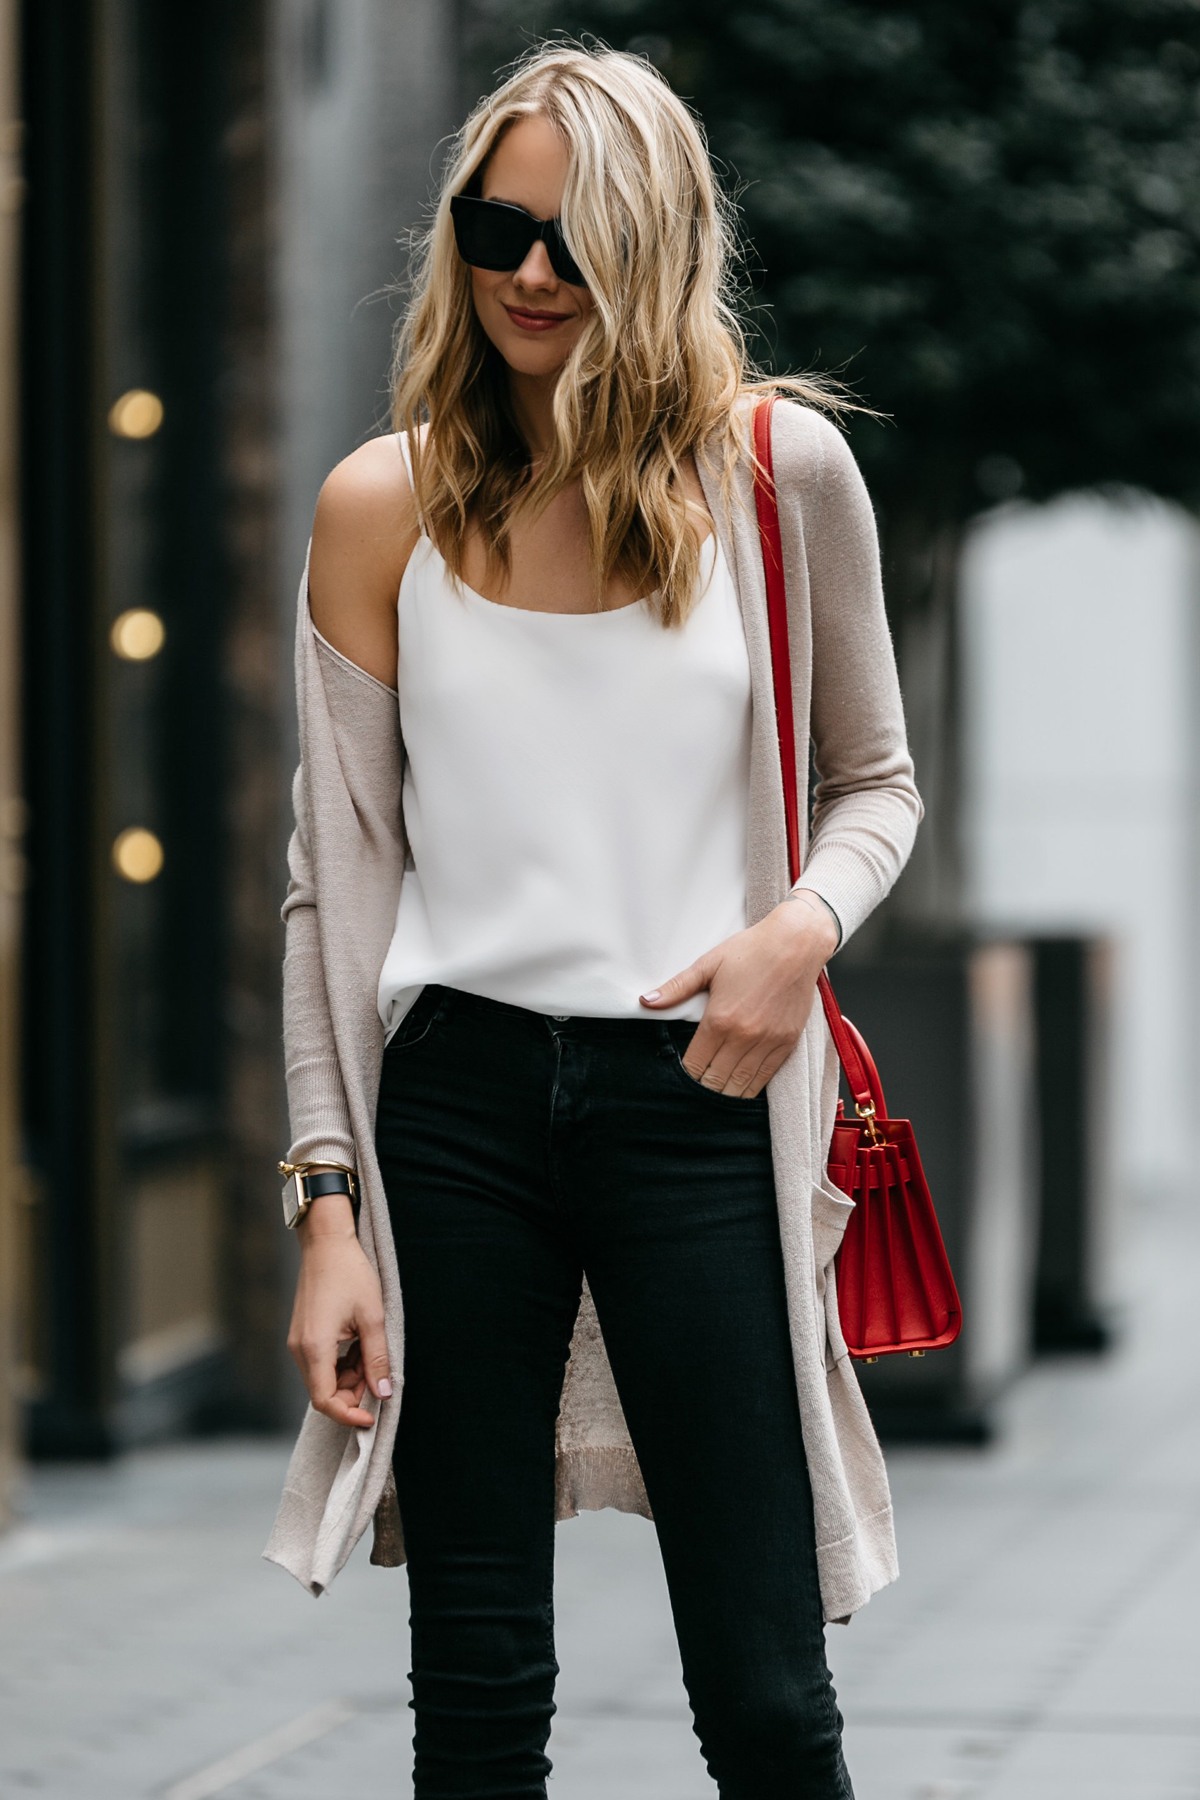 Fashion Jackson, Street Style, Beige Long Cardigan, Club Monaco White Cami, Black Skinny Jeans, Saint Laurent Nano Sac De Jour Red